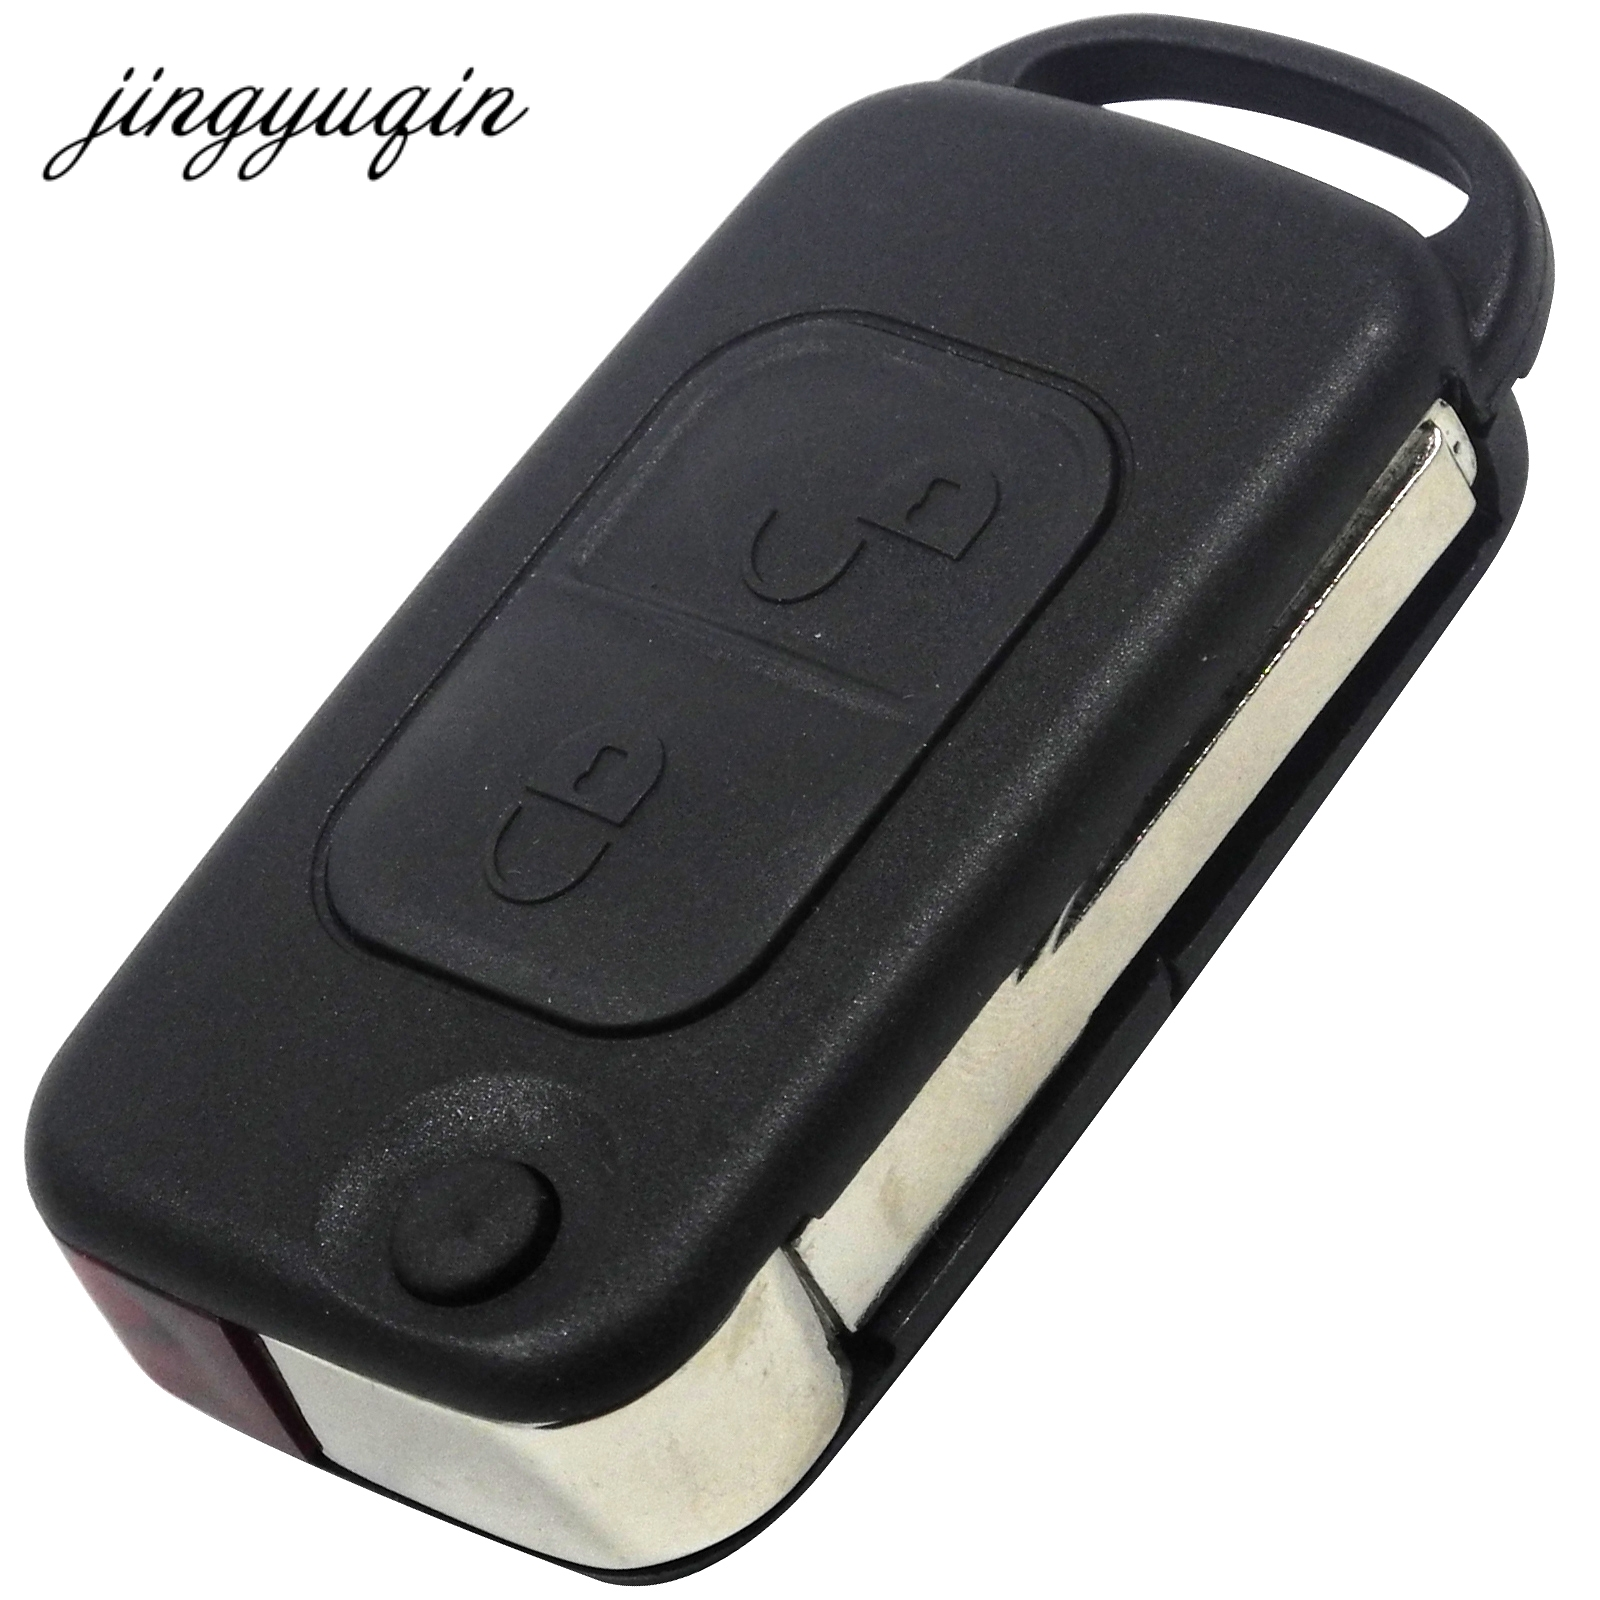 купить jingyuqin Flip Folding Car Case Remote Key Shell For Mercedes Benz SLK E113 A C E S W168 W202 W203 HU64 Blade 1/2/3/4 Button онлайн